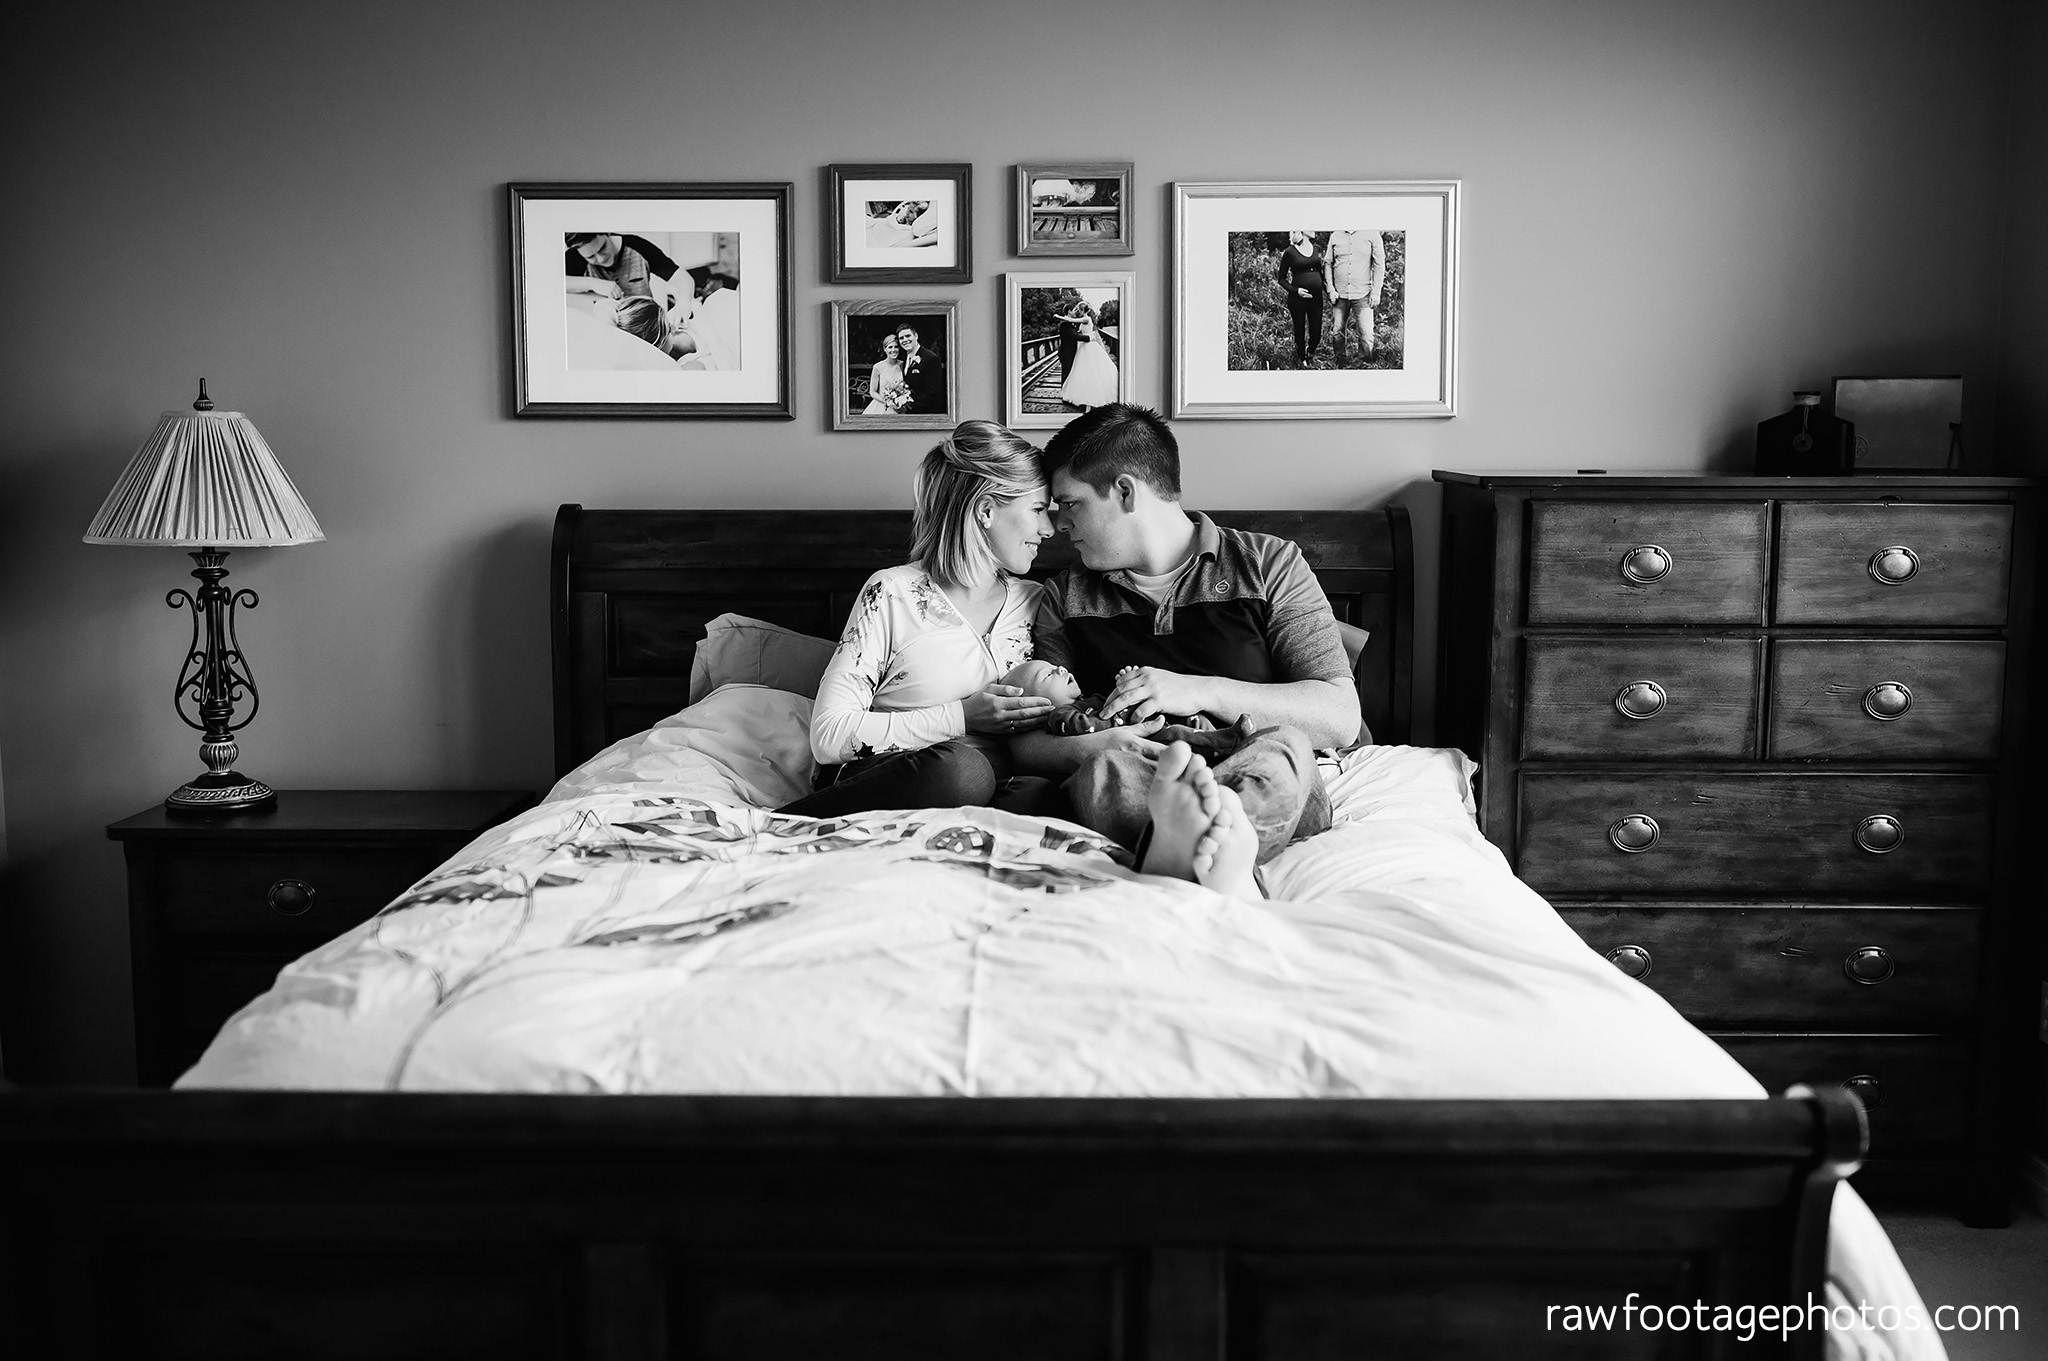 london_ontario_newborn_photographer-newborn_lifestyle_session-in_home_newborn_photos-raw_footage_photography010.jpg